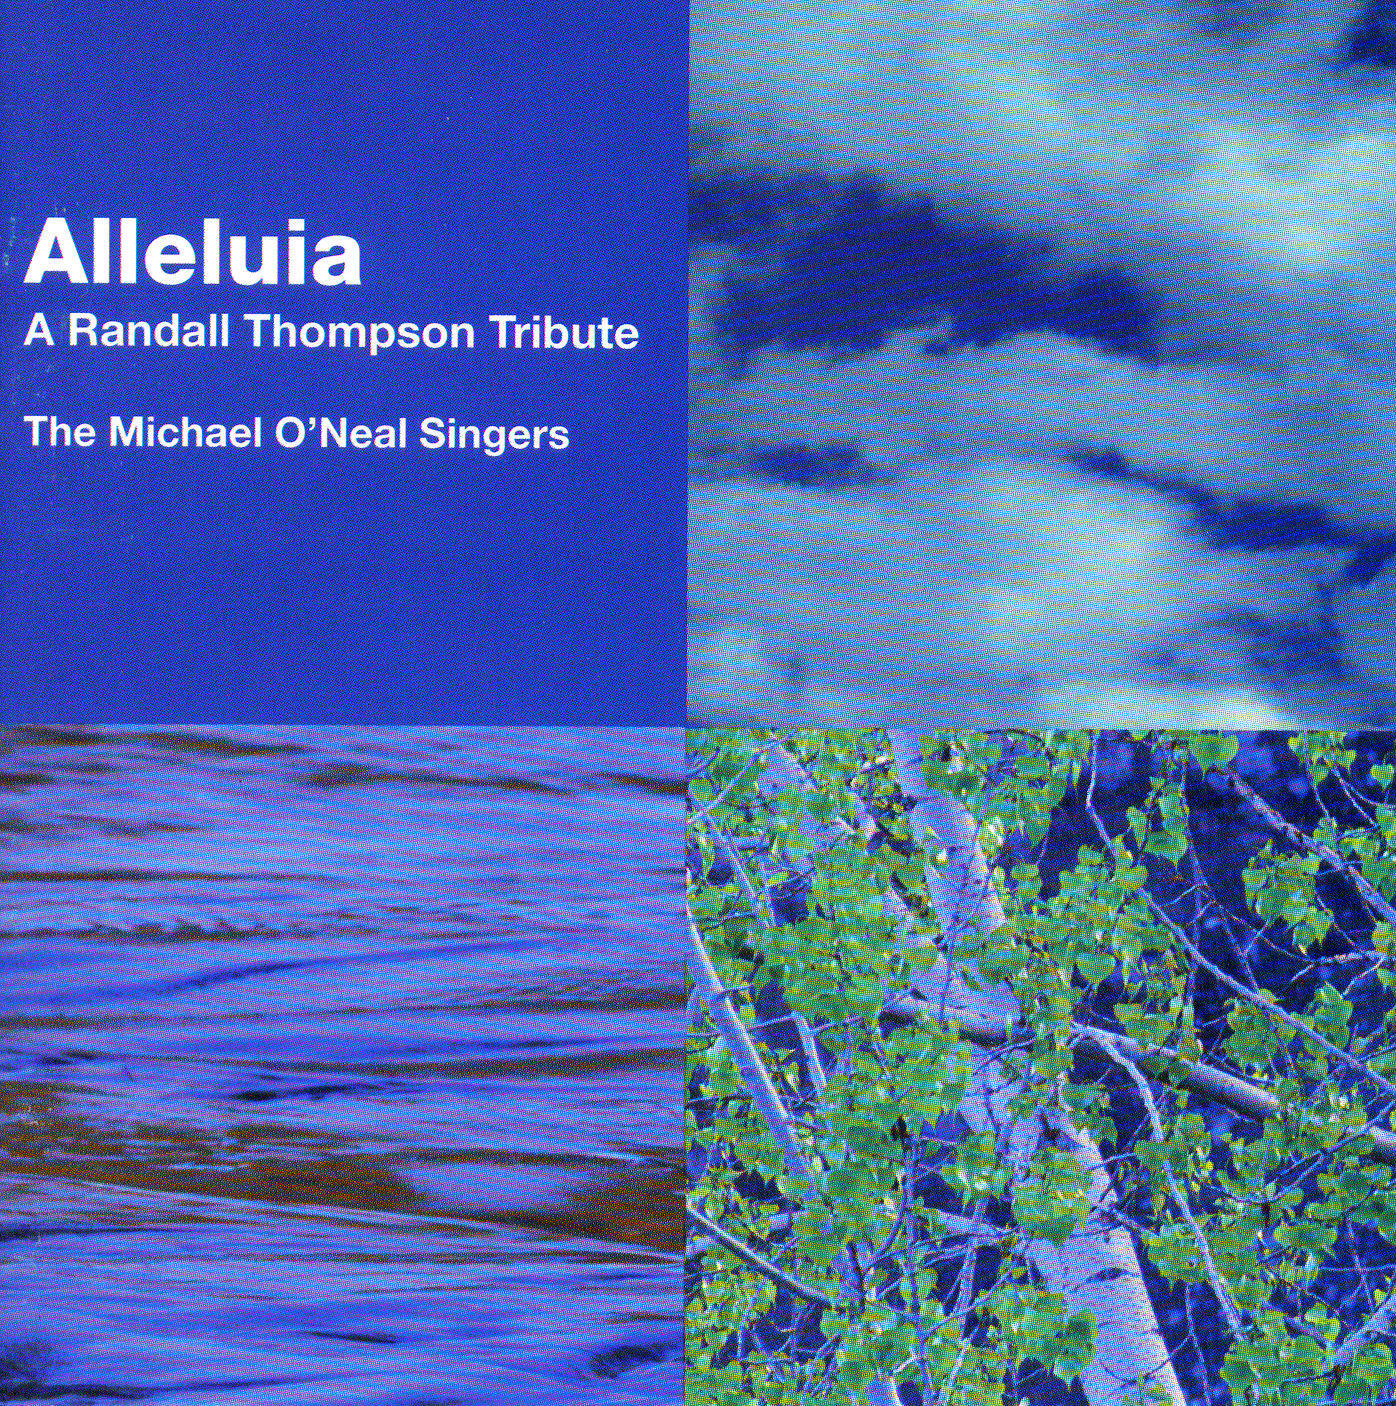 Alleluia: A Randall Thompson Tribute